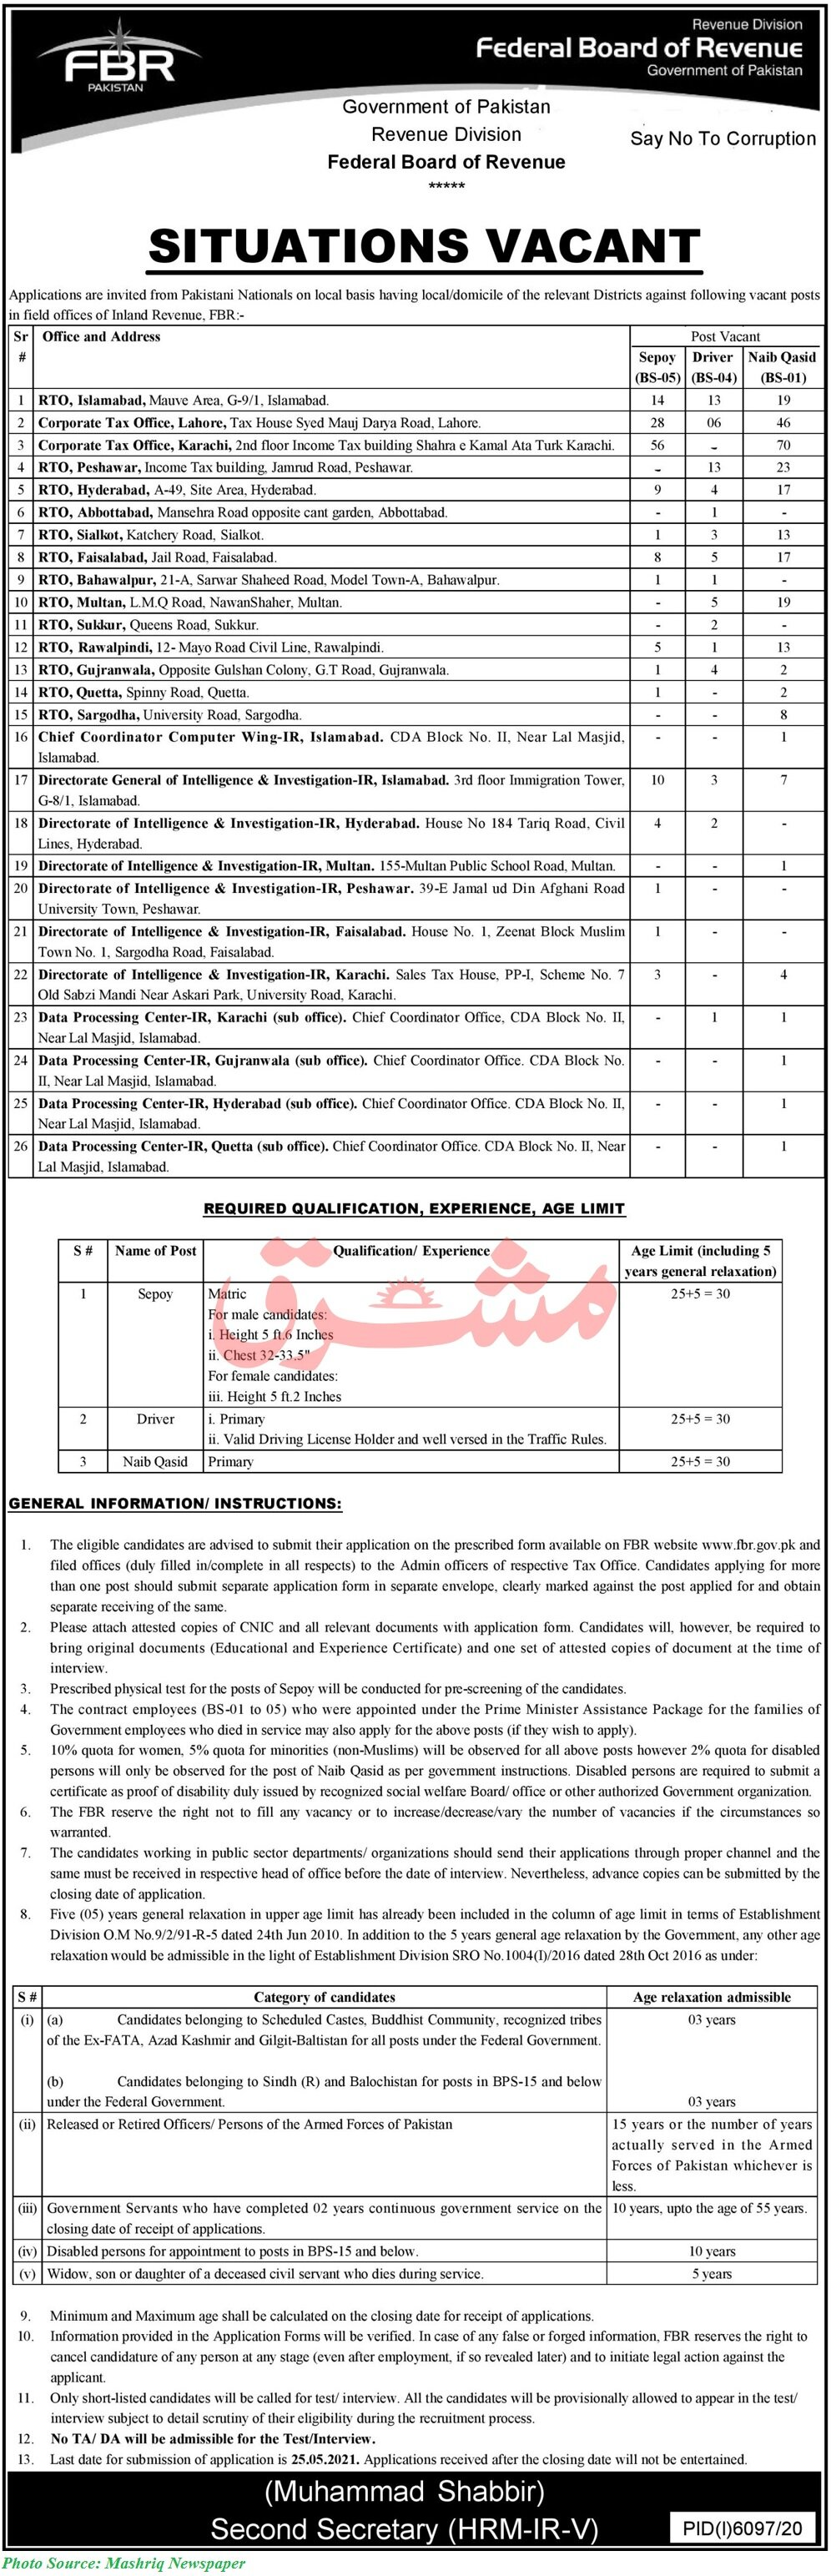 FBR Jobs 2021 Federal Borad of Revenue Jobs Latest Advertisement Download Application forms